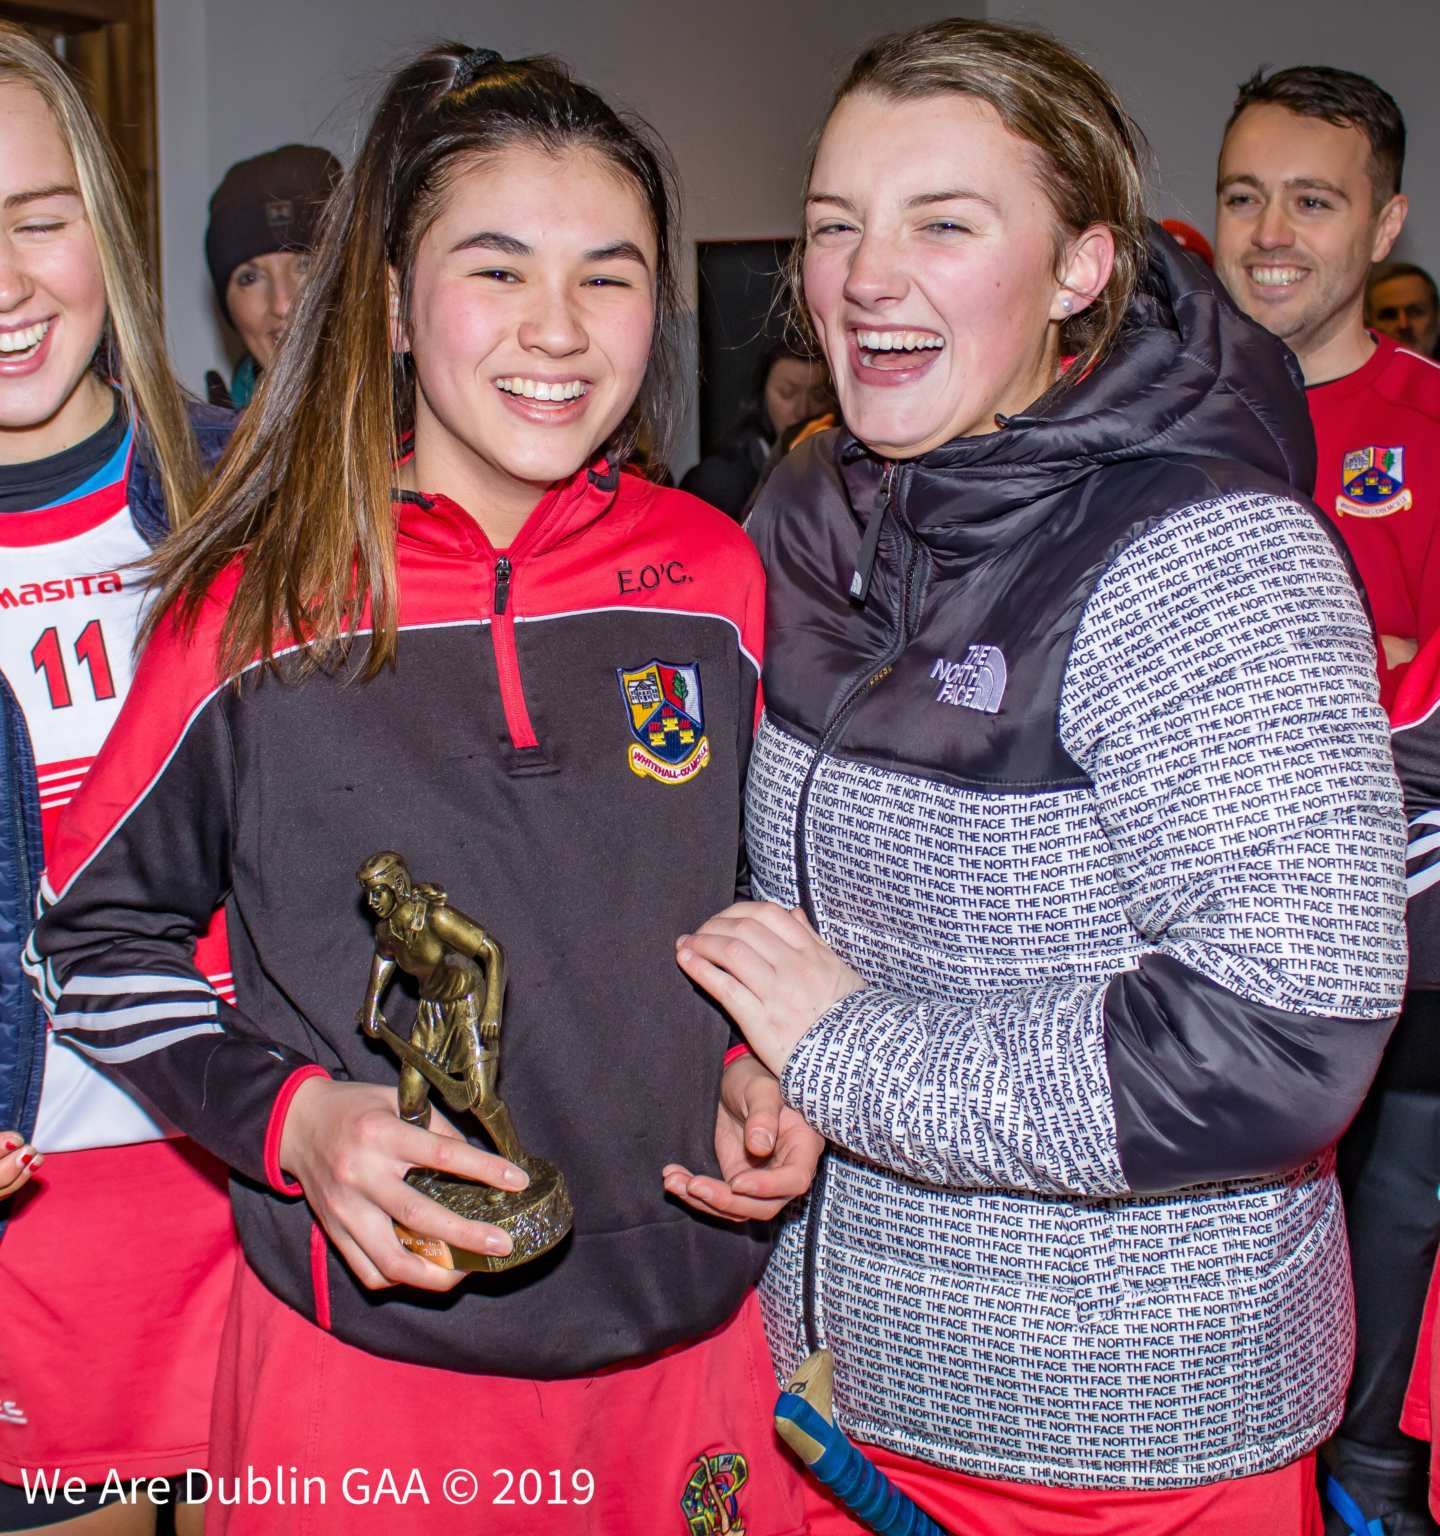 Éile O'Ceallaigh (Left) laughing with one of her Whitehall Colmcille teammates, Éile won the Player of the Match award in her sides win in the Dublin Camogie Minor C Final